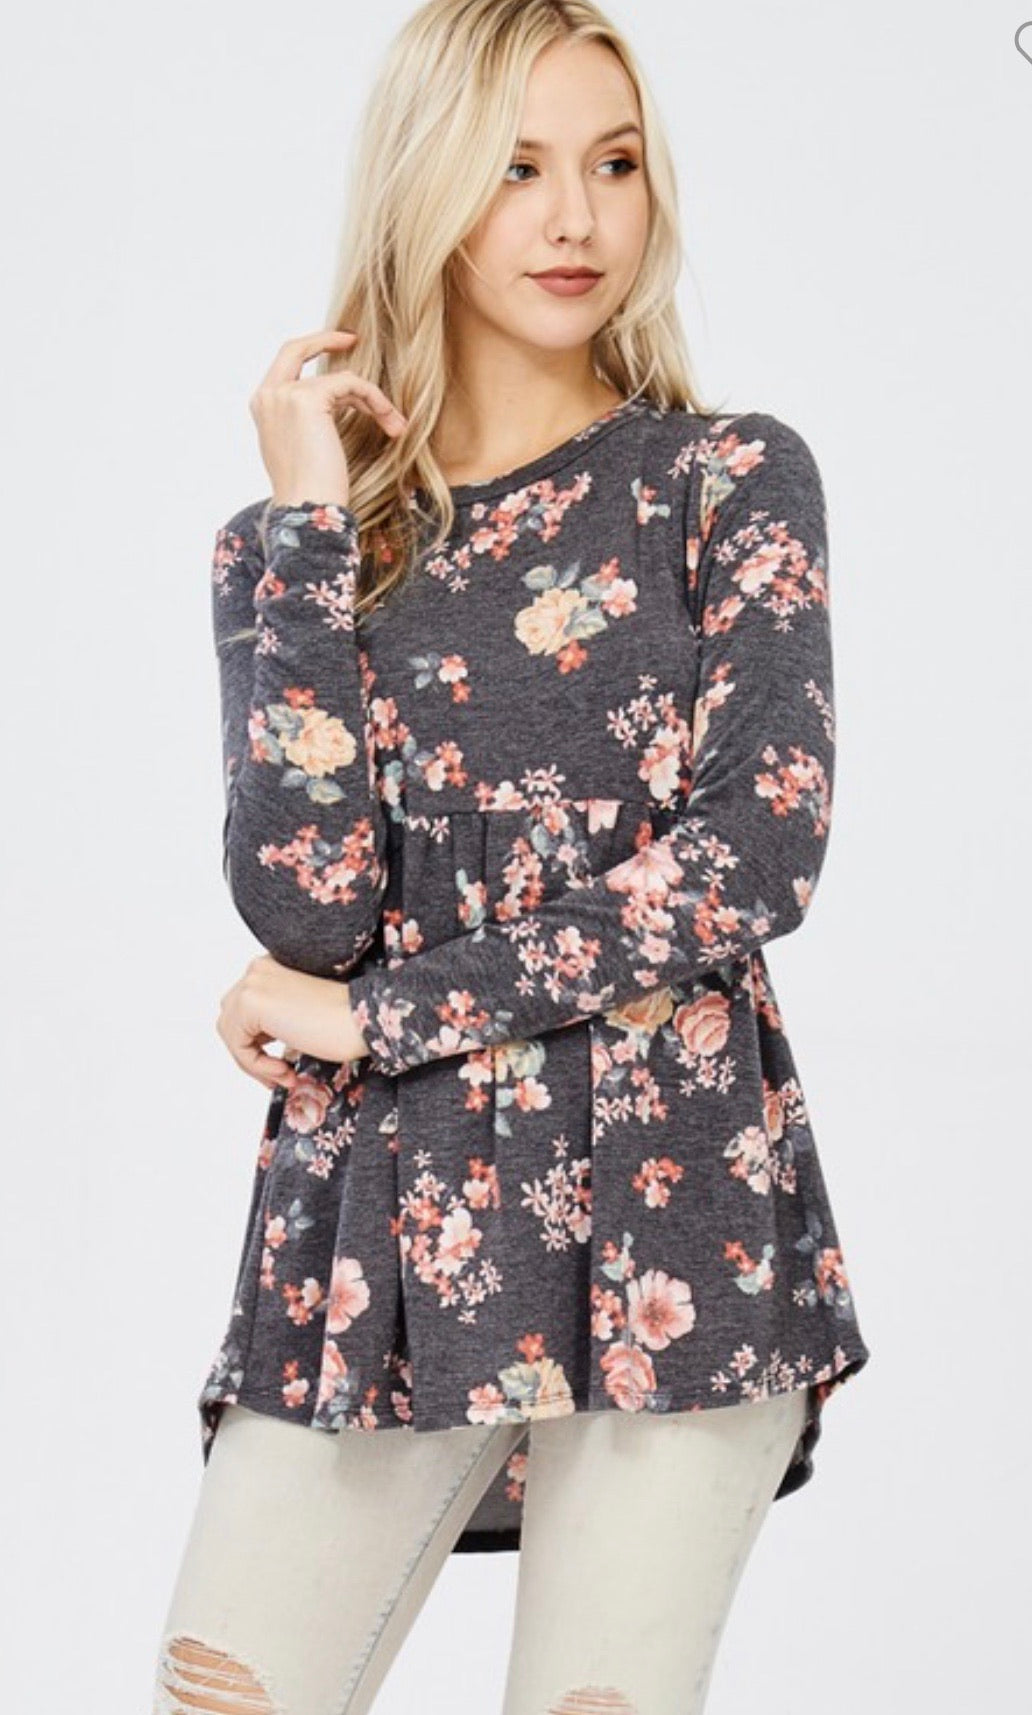 Charcoal Floral Peplum Top